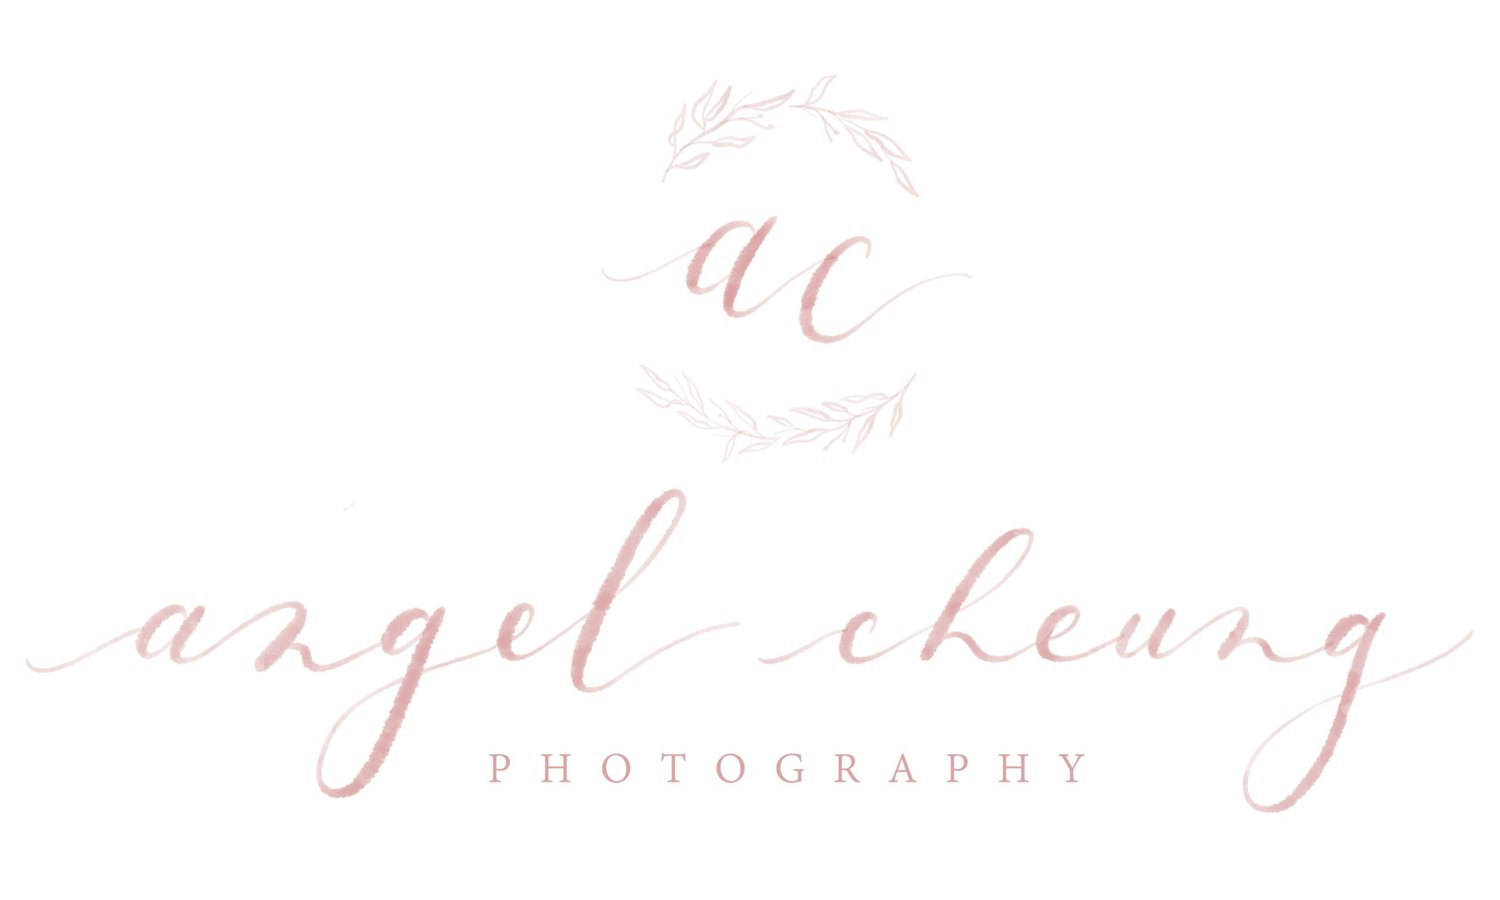 angel cheung photography